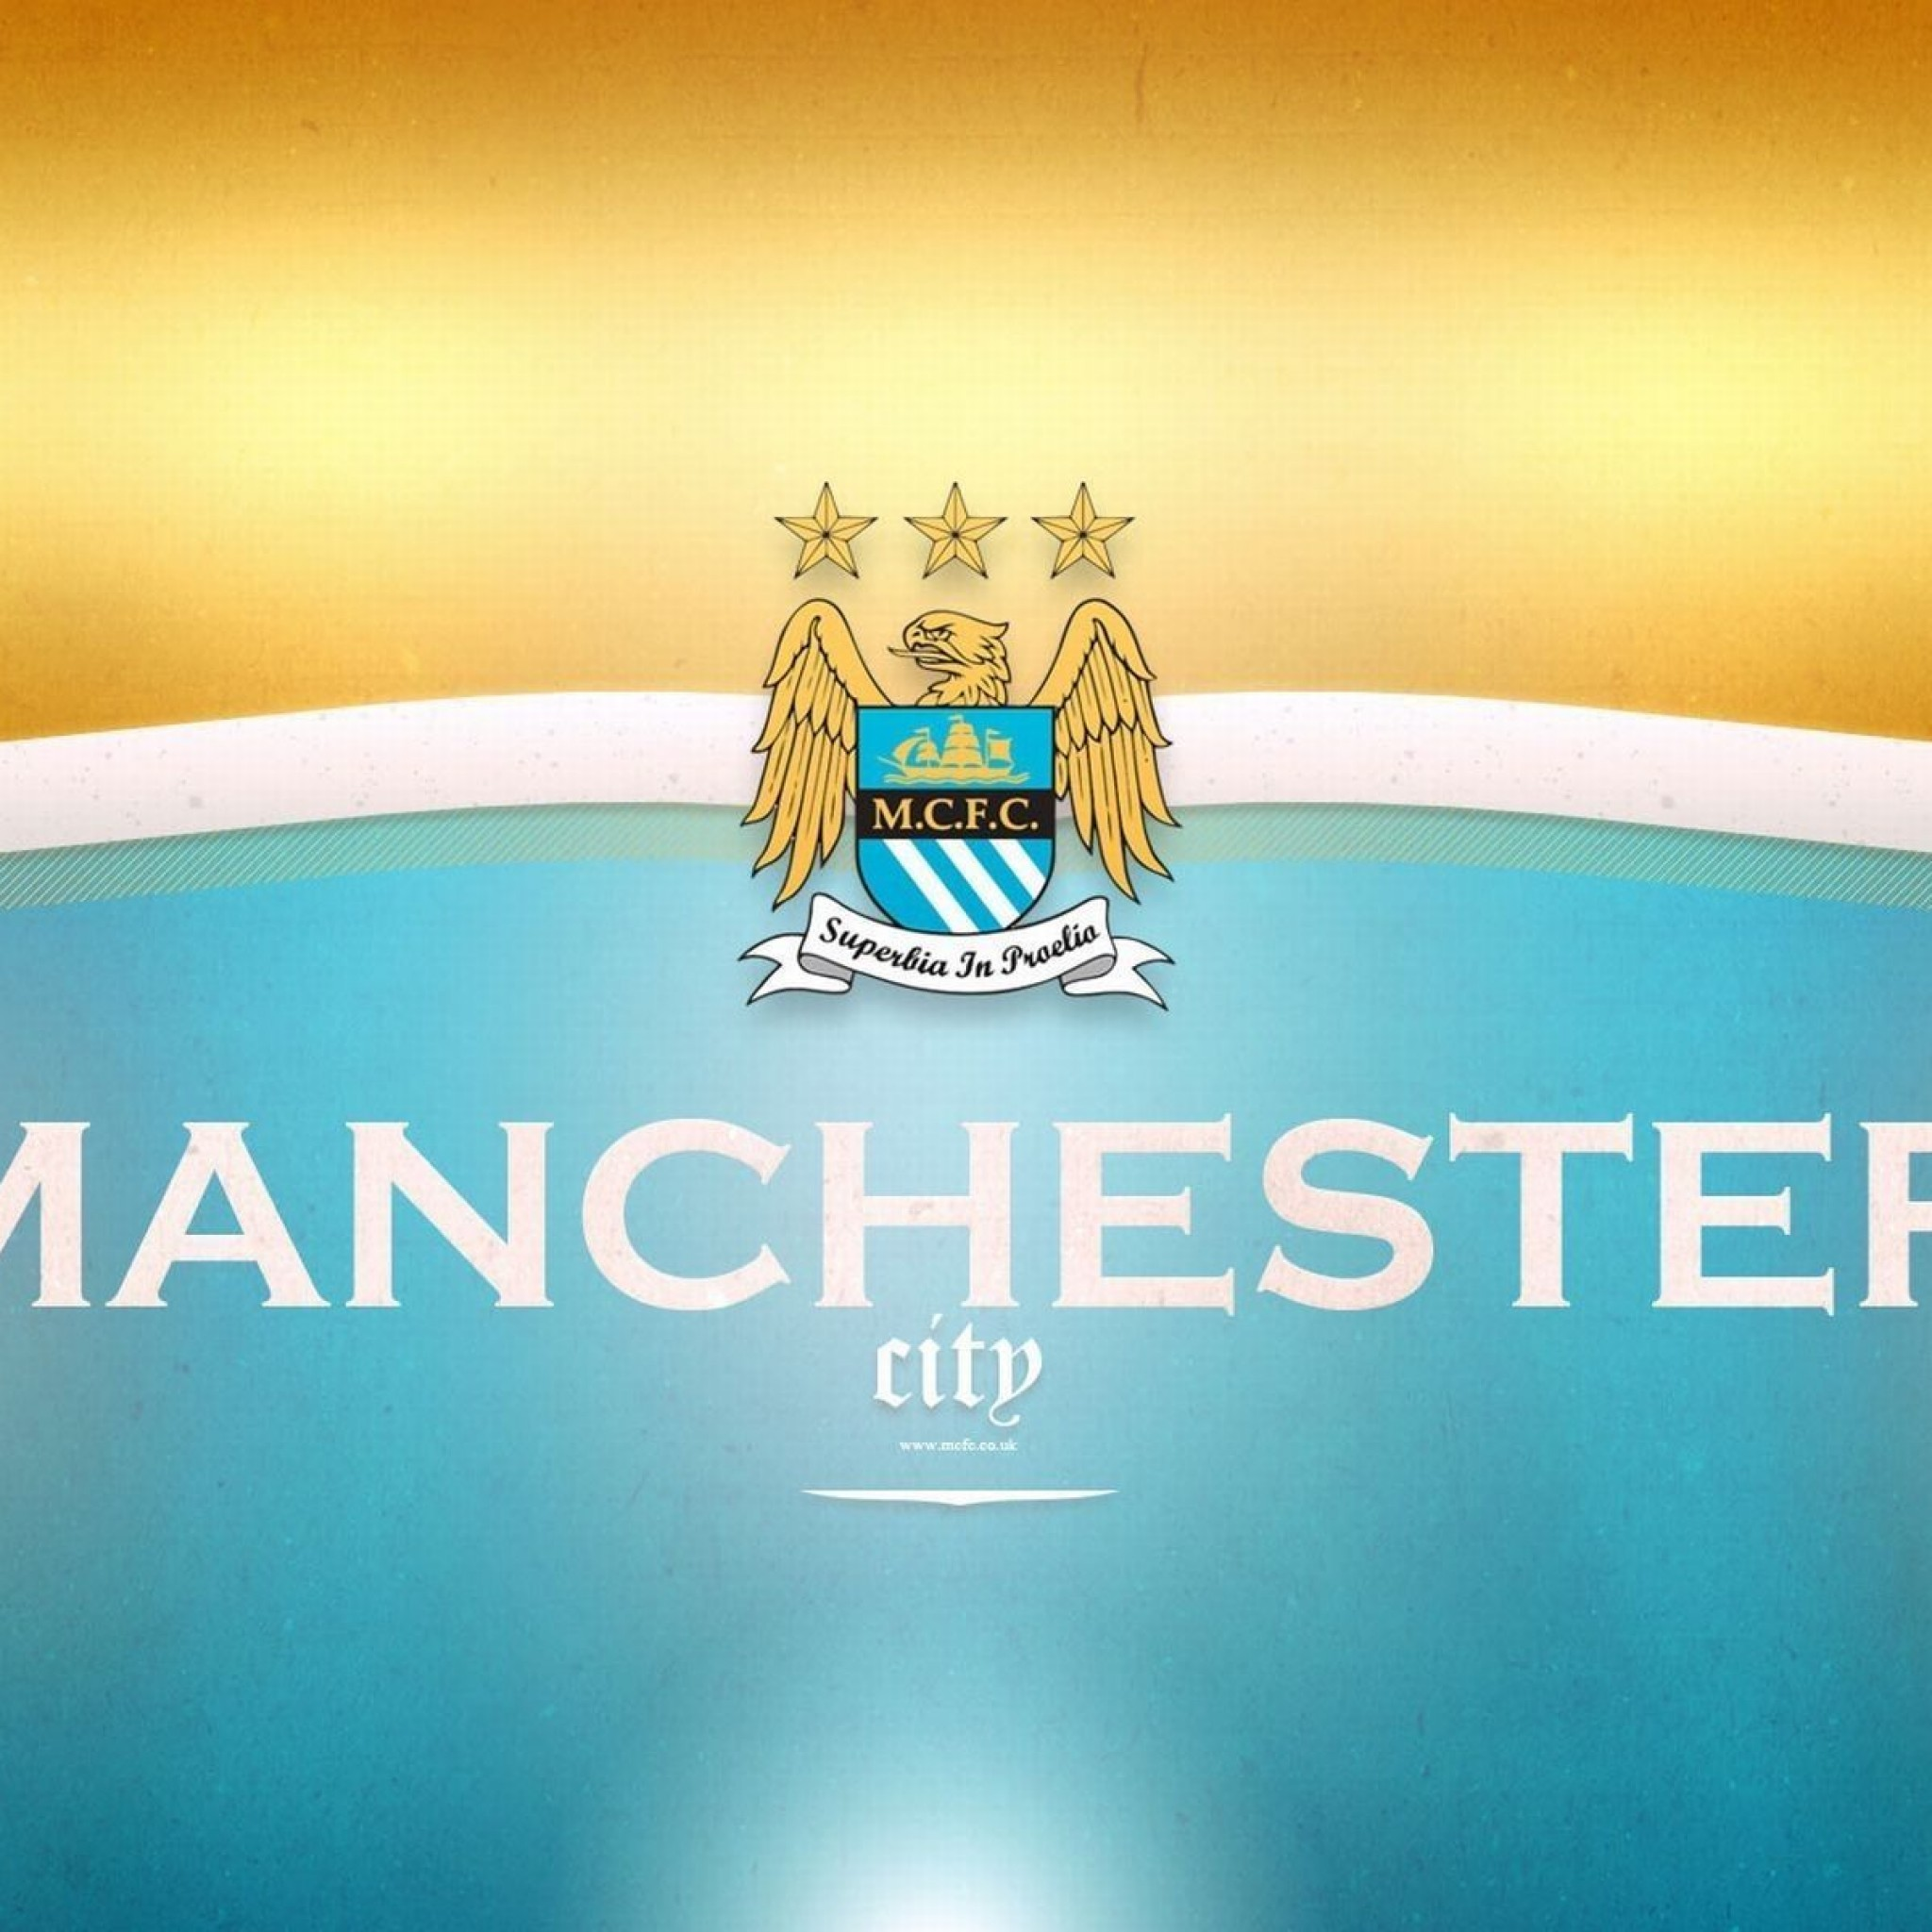 2048x2048 Manchester City Wallpaper For Iphone 5 | High Quality Wallpapers .